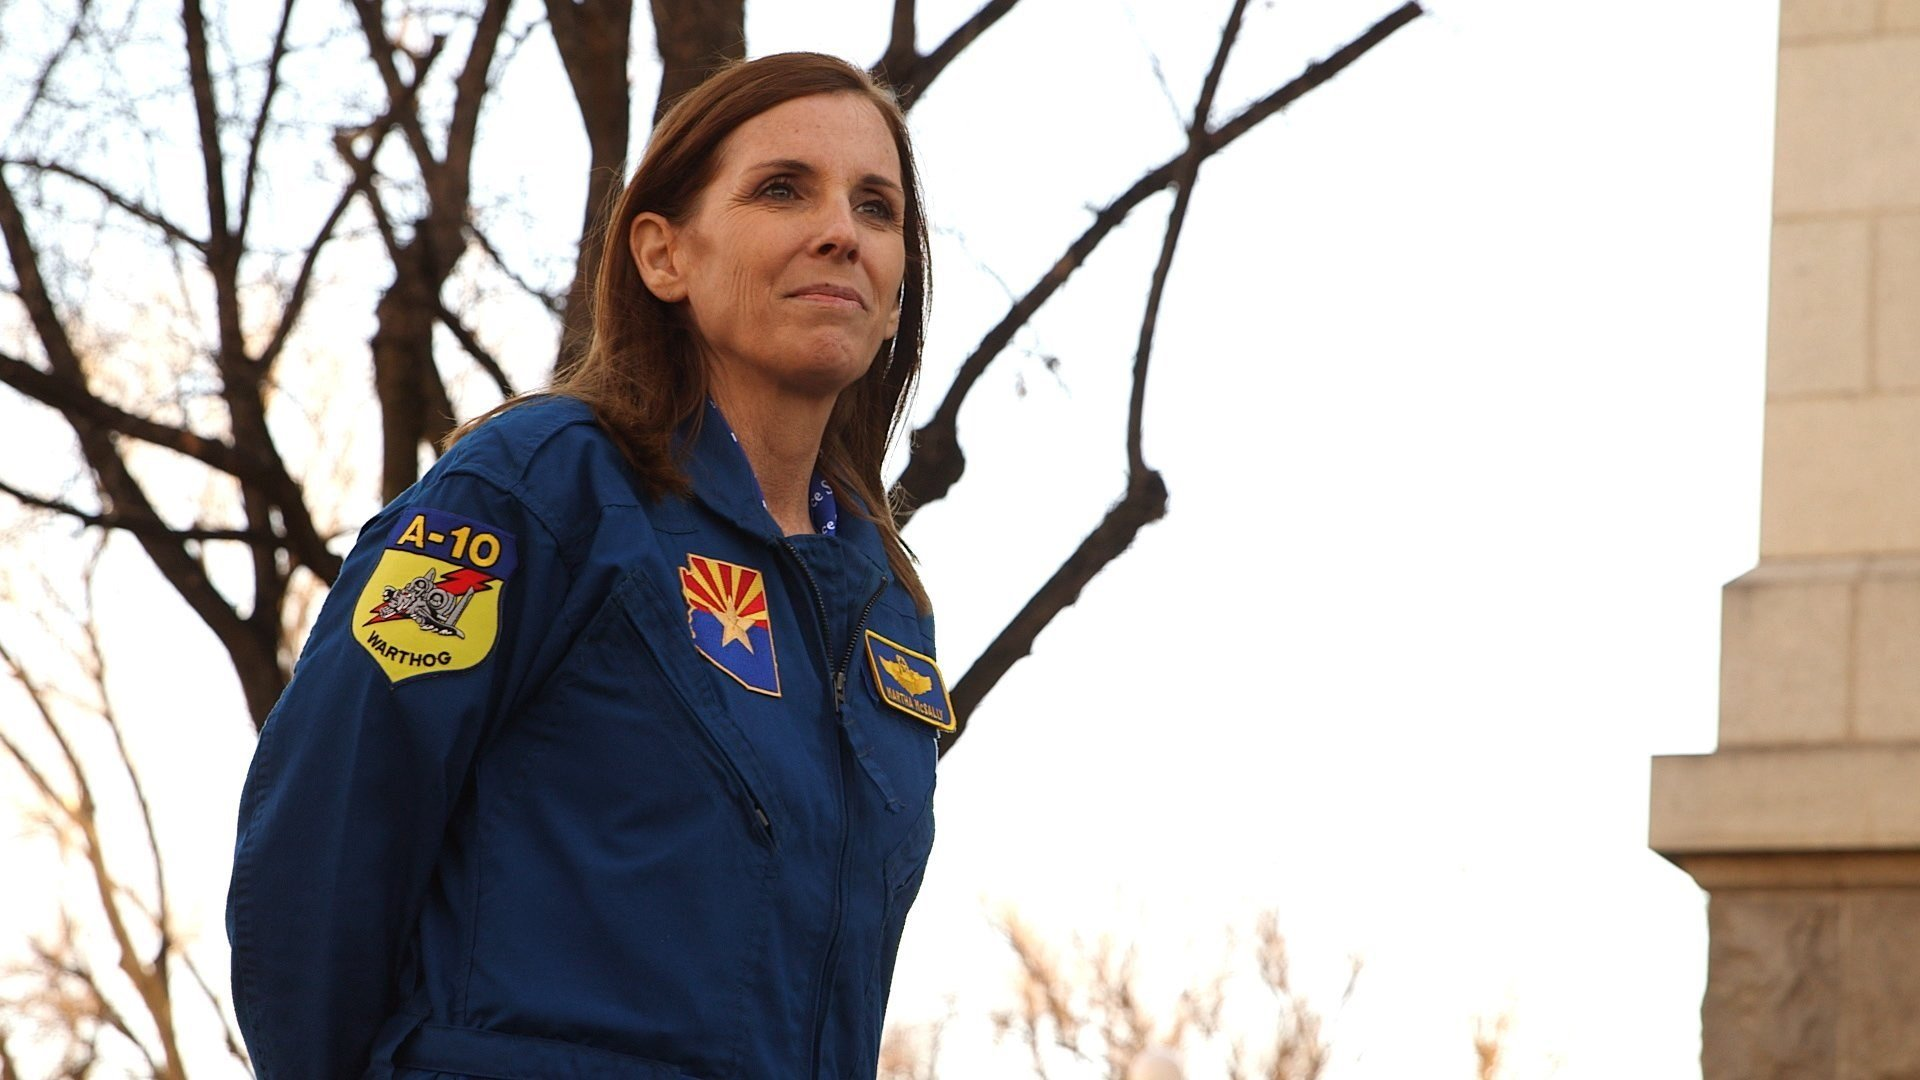 Dressed in a blue flight suit adorned with a US flag and her name, Martha McSally, the US Congresswoman representing this Tucson, Arizona crowd, scanned the airline hangar filled with supporters. Saluting, as the retired Colonel is well accustomed to...